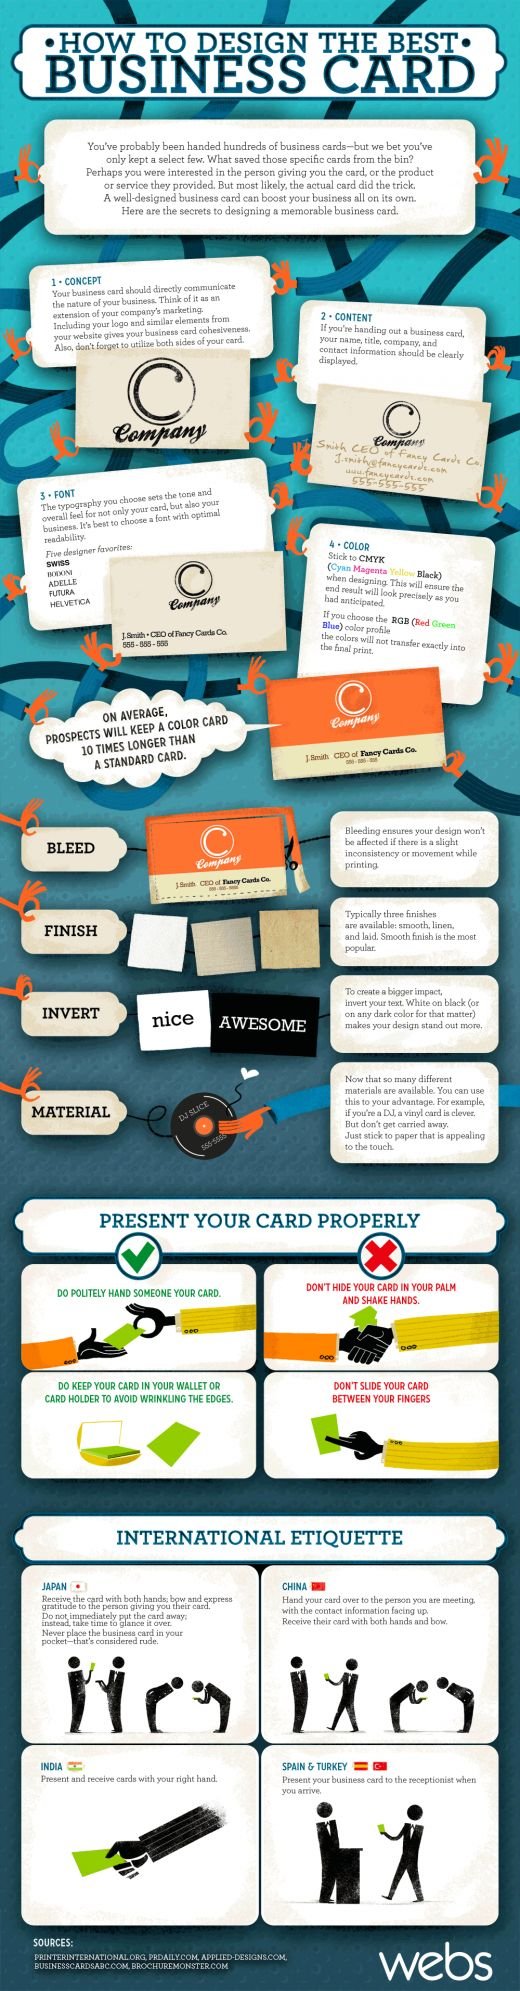 How to Design the Best Business Card [Infographic] via Webs